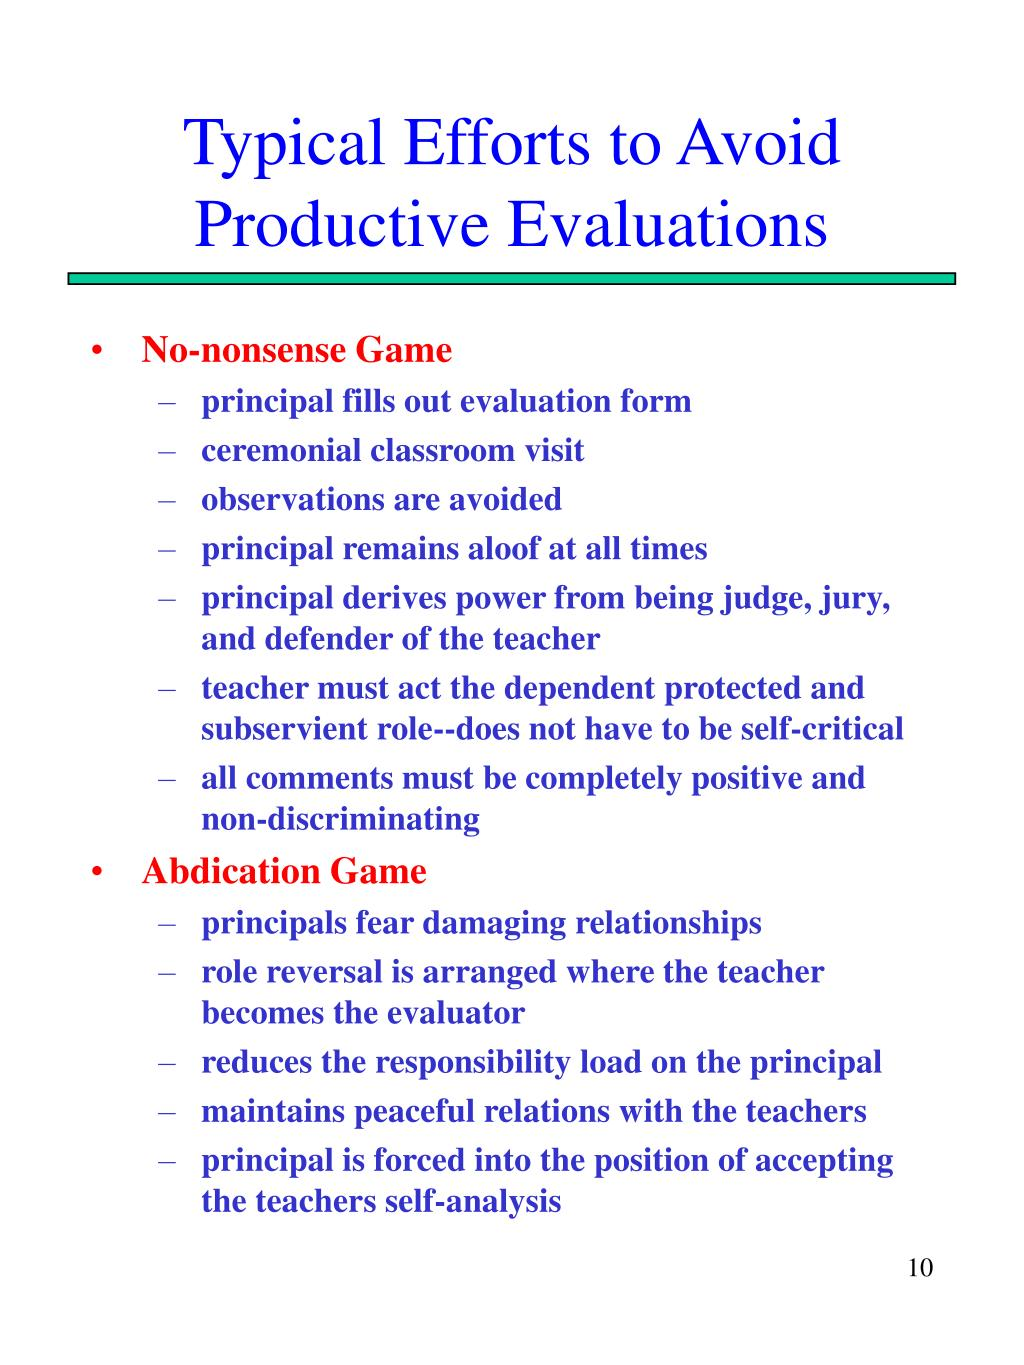 Typical Efforts to Avoid Productive Evaluations